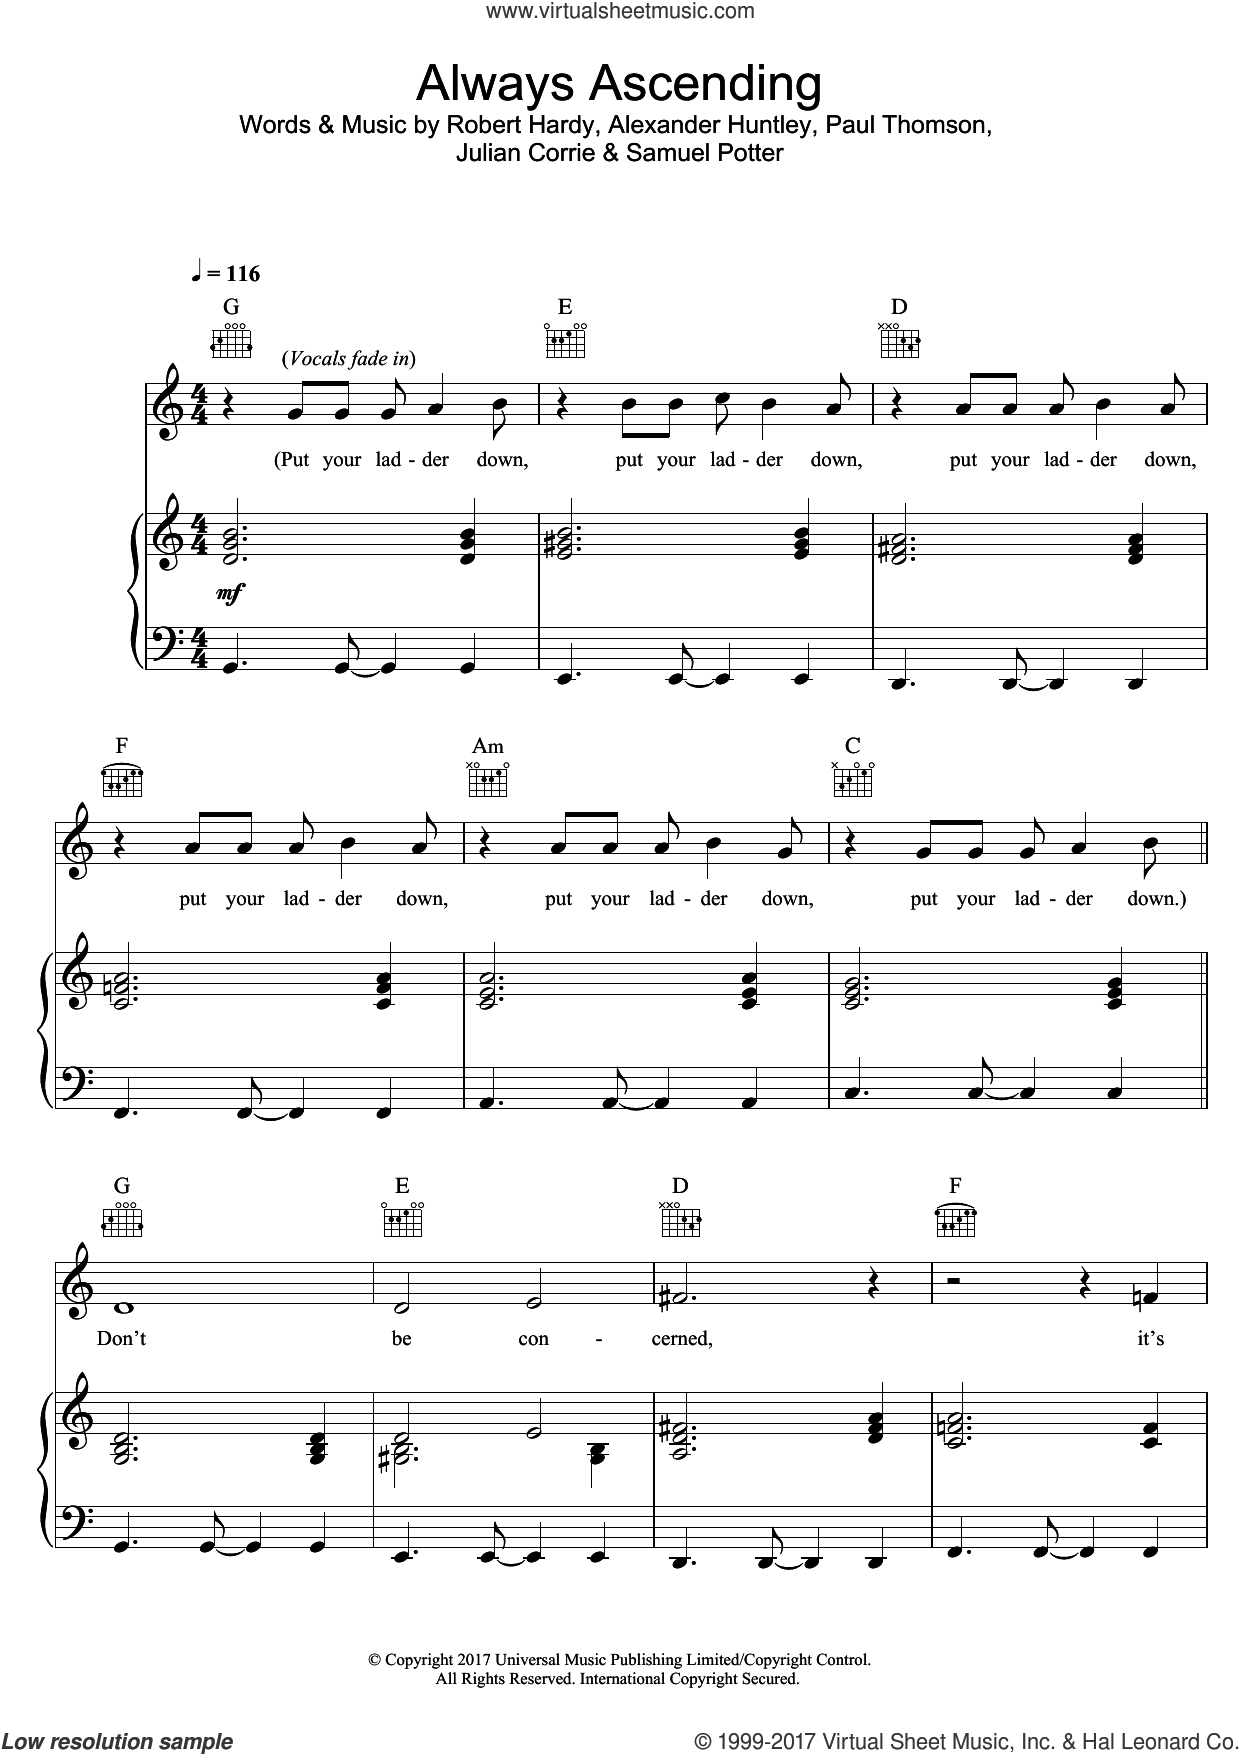 Always Ascending sheet music for voice, piano or guitar by Franz Ferdinand, Alexander Huntley, Julian Corrie, Paul Thomson, Robert Hardy and Samuel Potter, intermediate skill level